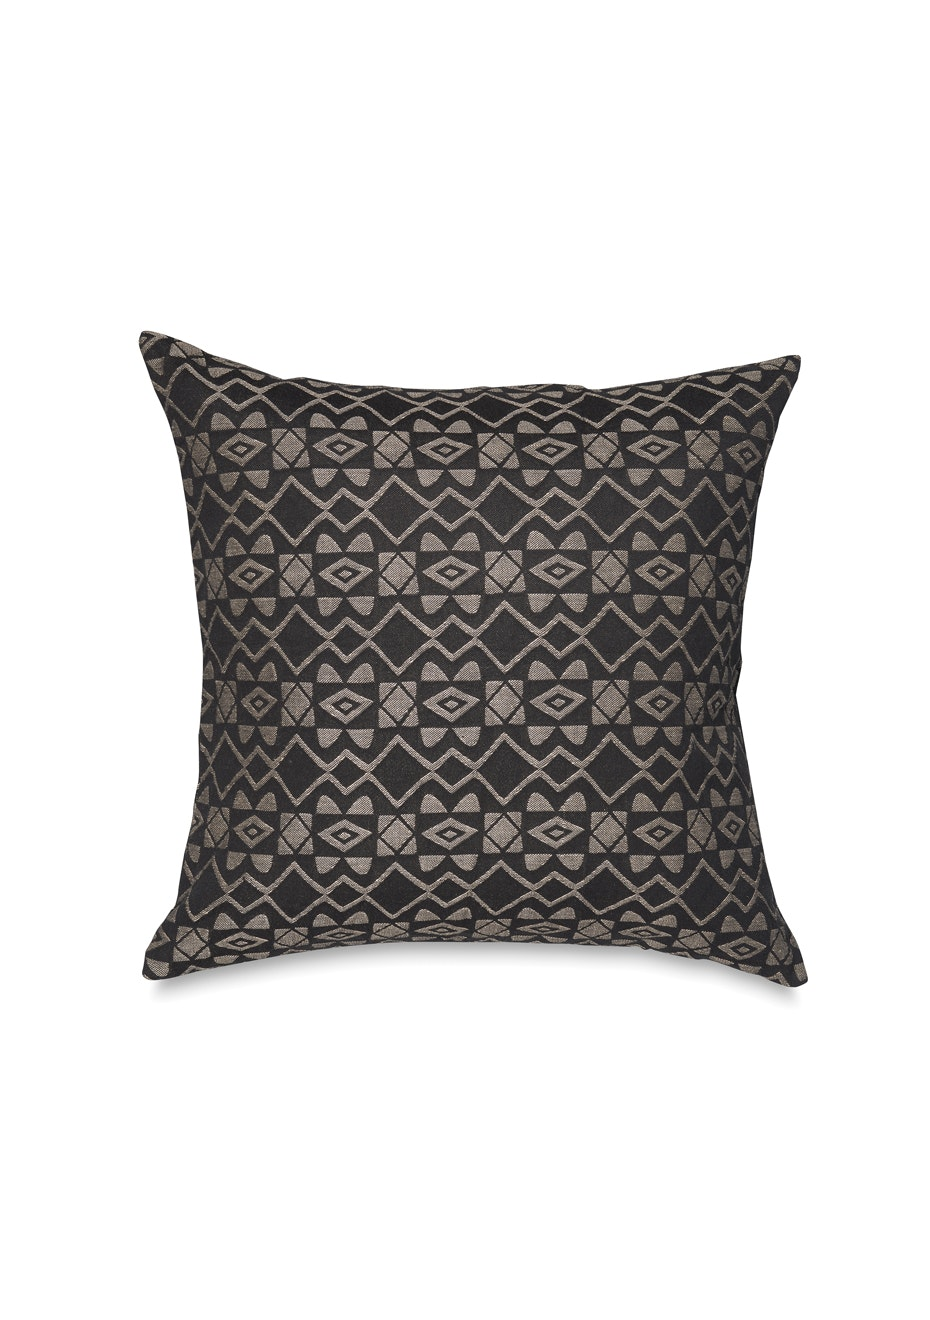 Citta - Afrique Petit Woven Cushion Cover - Black/Limestone